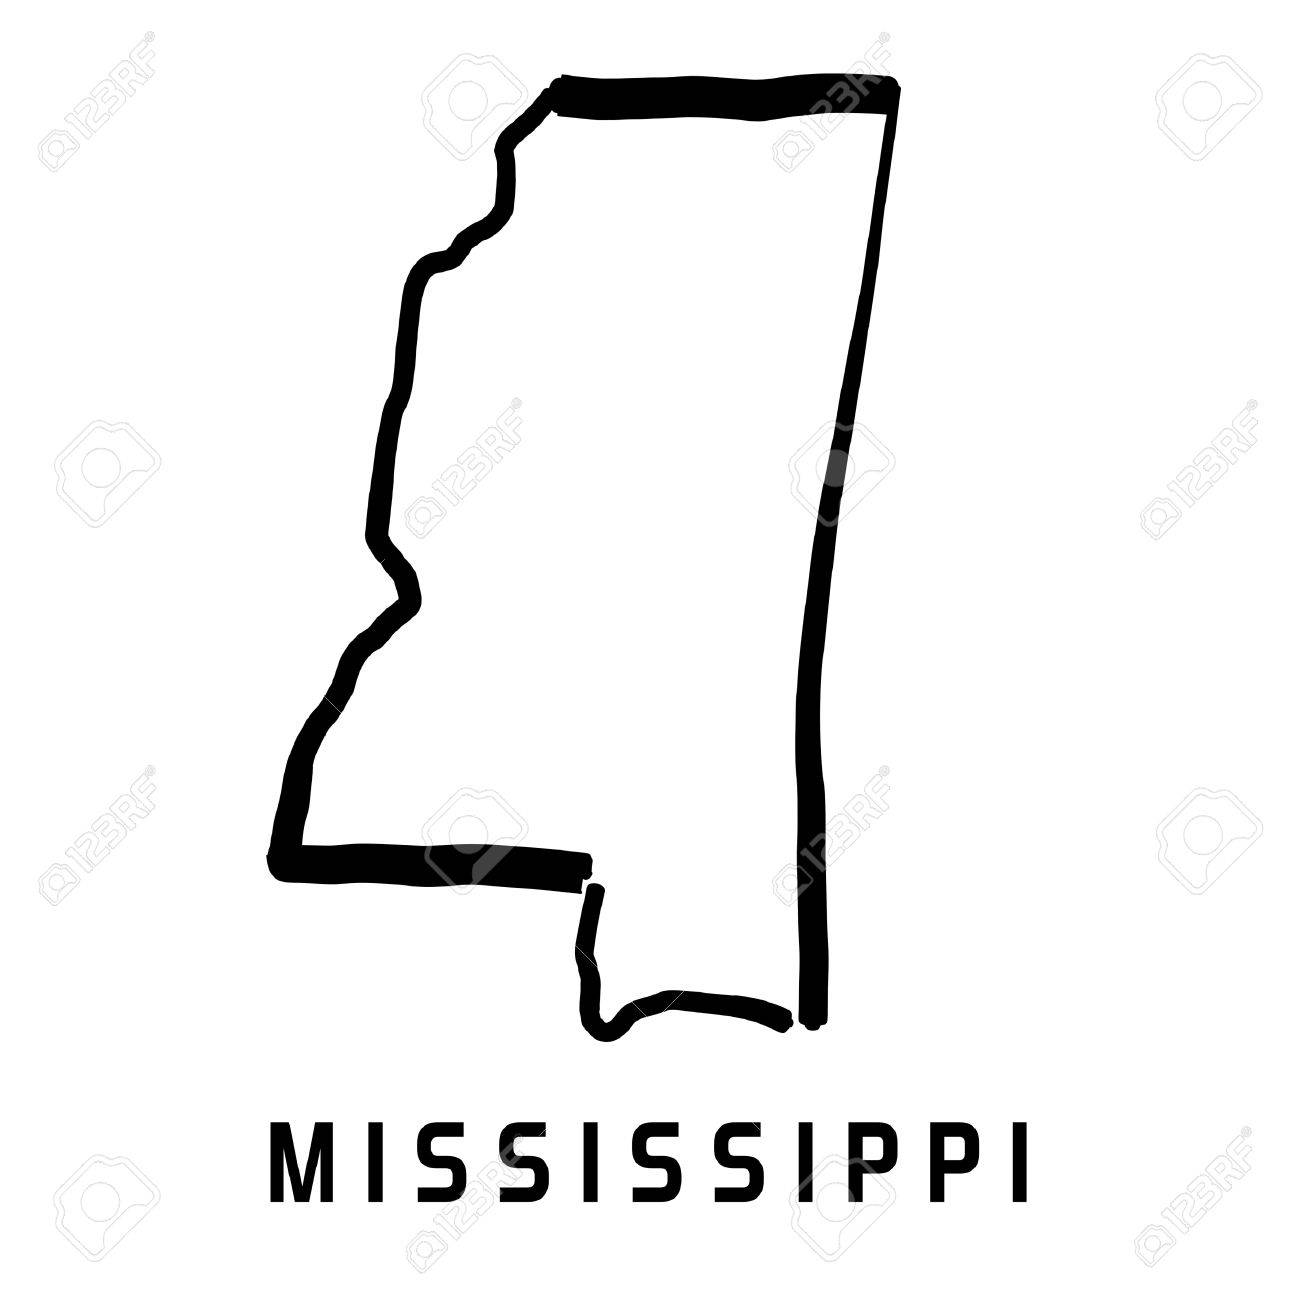 Mississippi State Map Outline.Mississippi State Map Outline Smooth Simplified Us State Shape